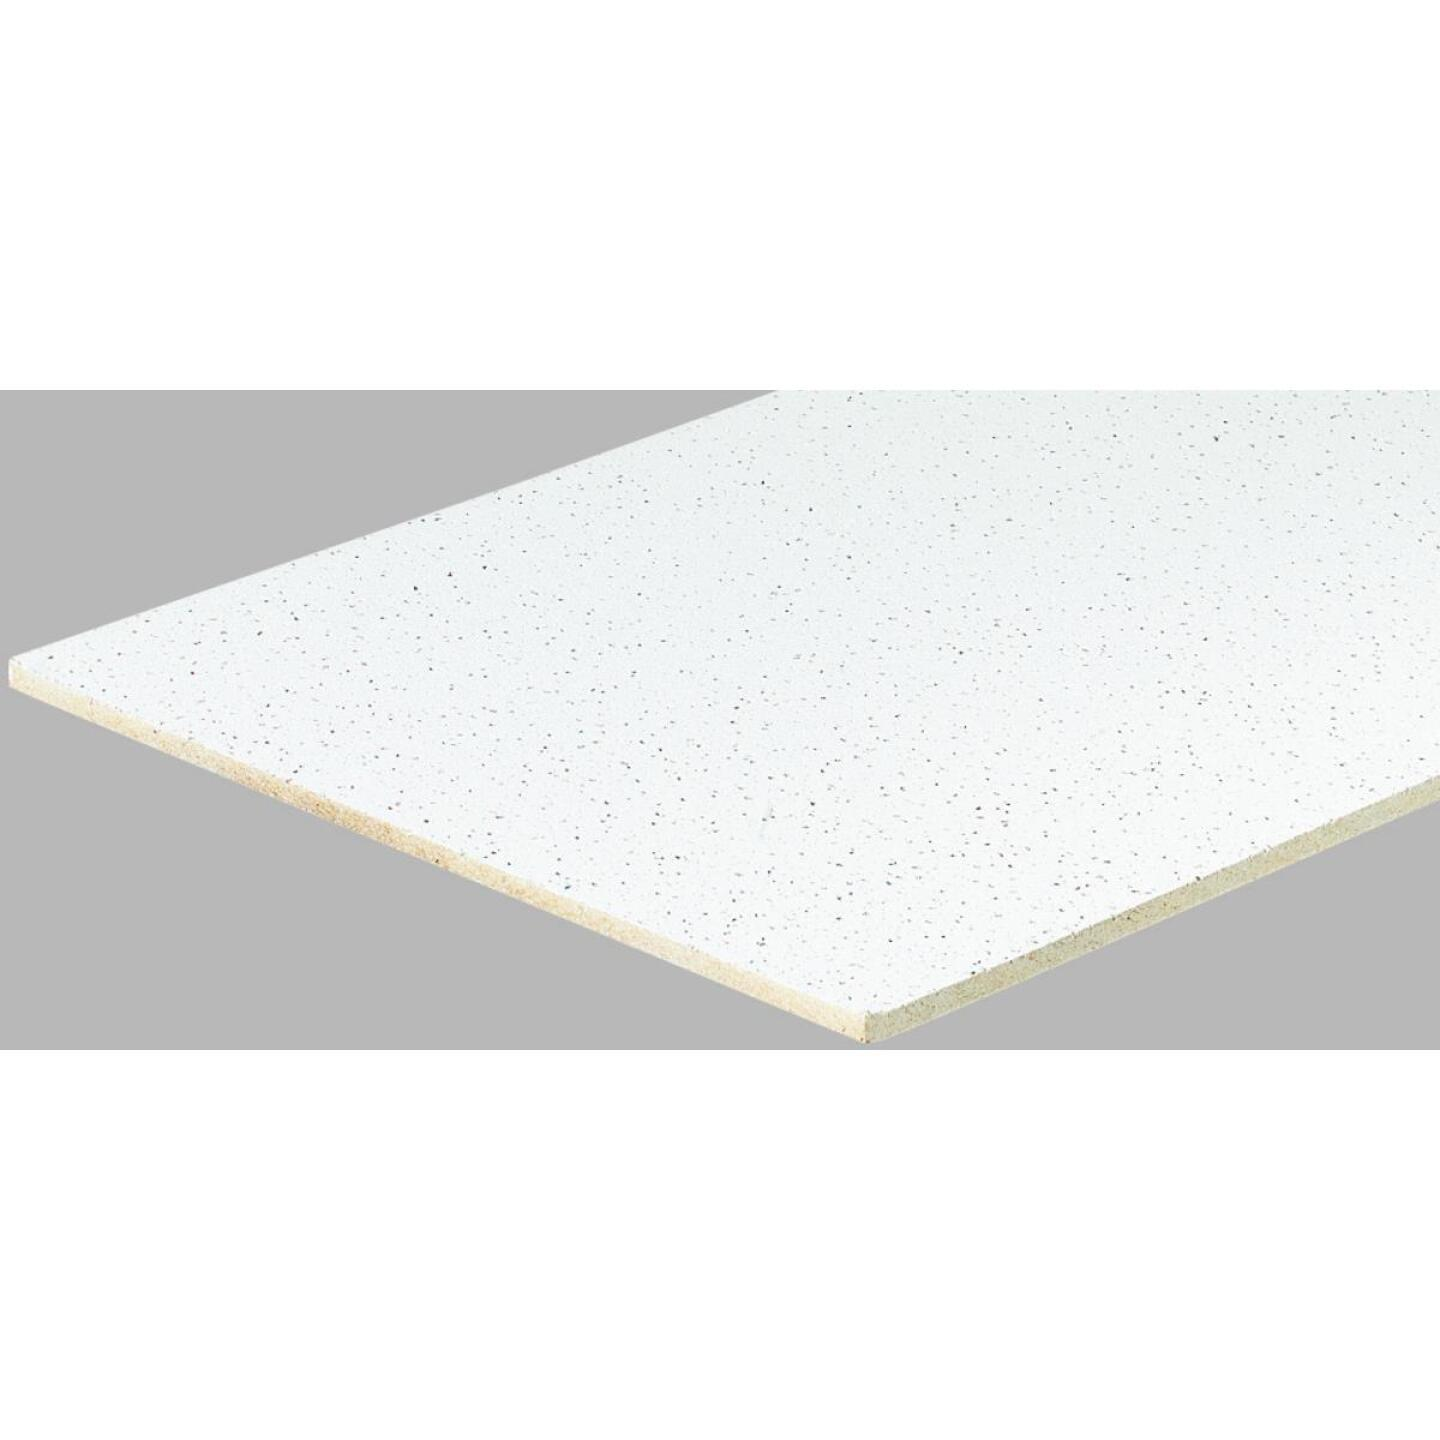 Radar Fissured 2 Ft. x 2 Ft. White Mineral Fiber Square Edge Suspended Ceiling Tile (16-Count) Image 1